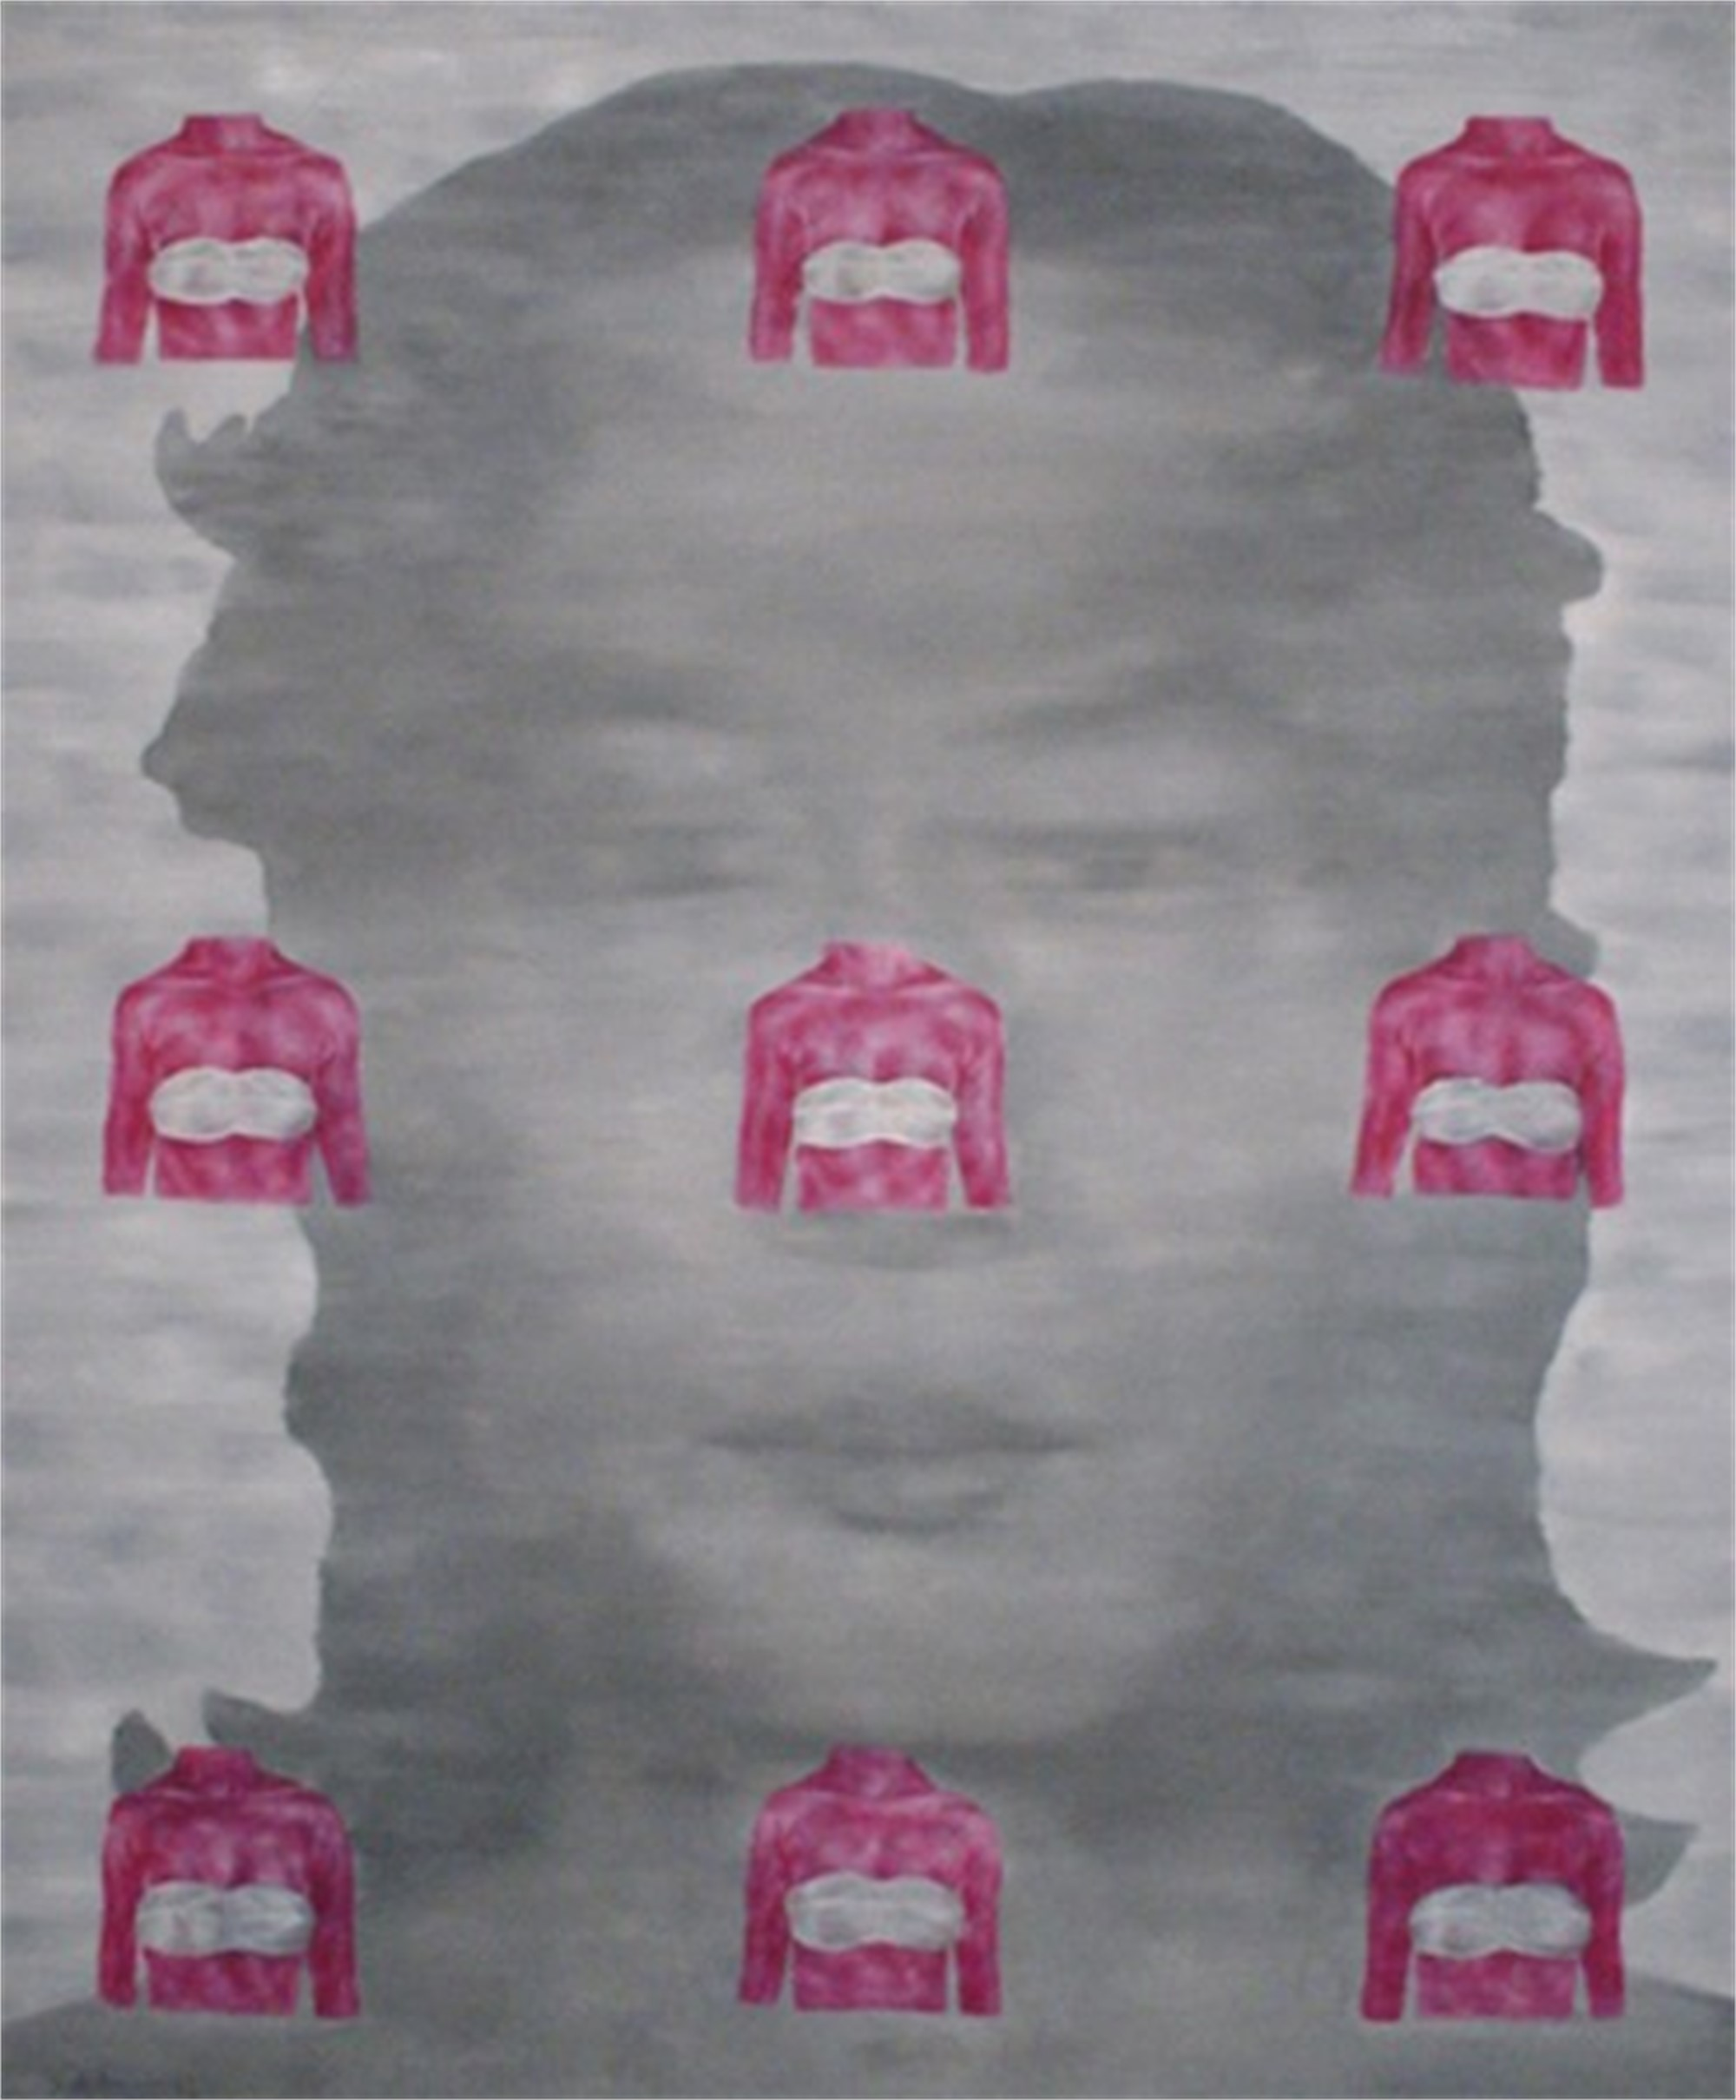 Self-portrait #4 by Contemporary Chinese Art